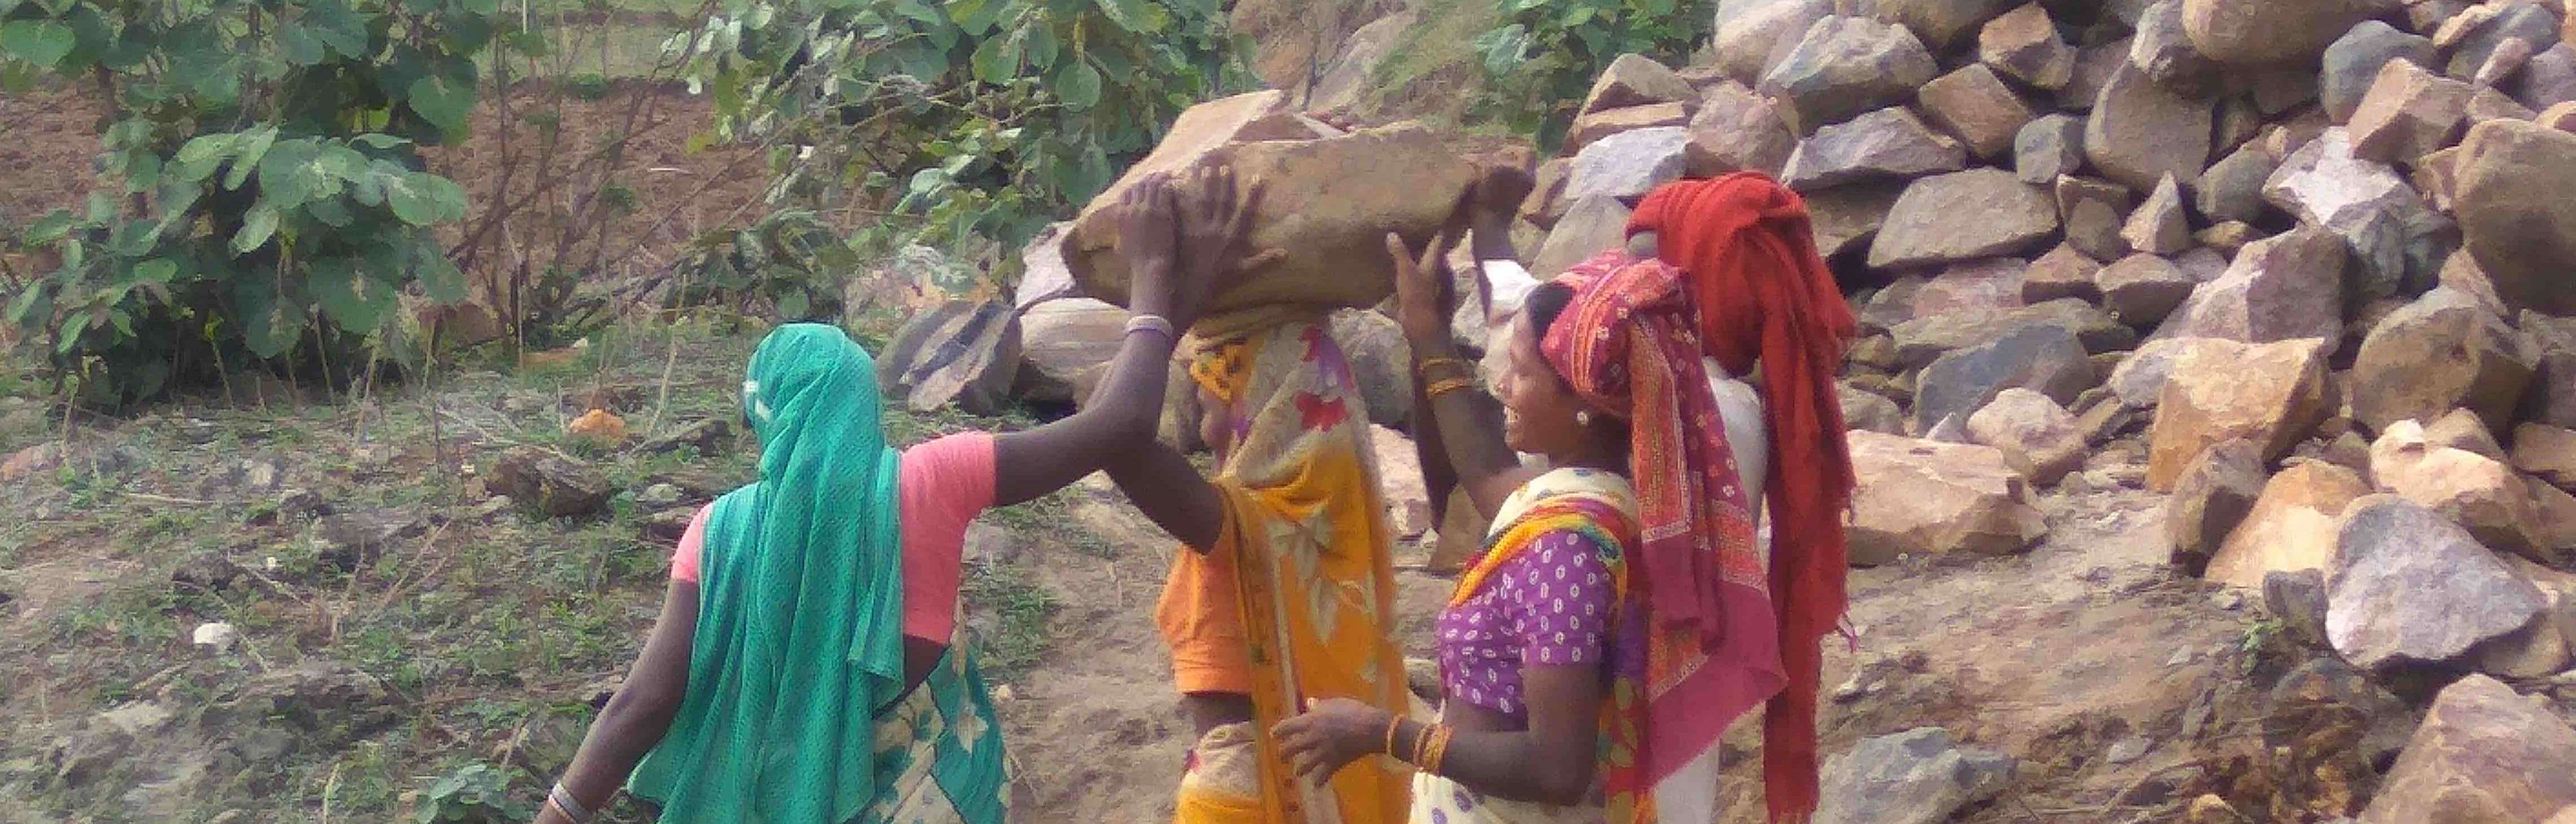 NREGA Workers Have To Walk Miles, Spend Hours To Access Wages, Finds Study